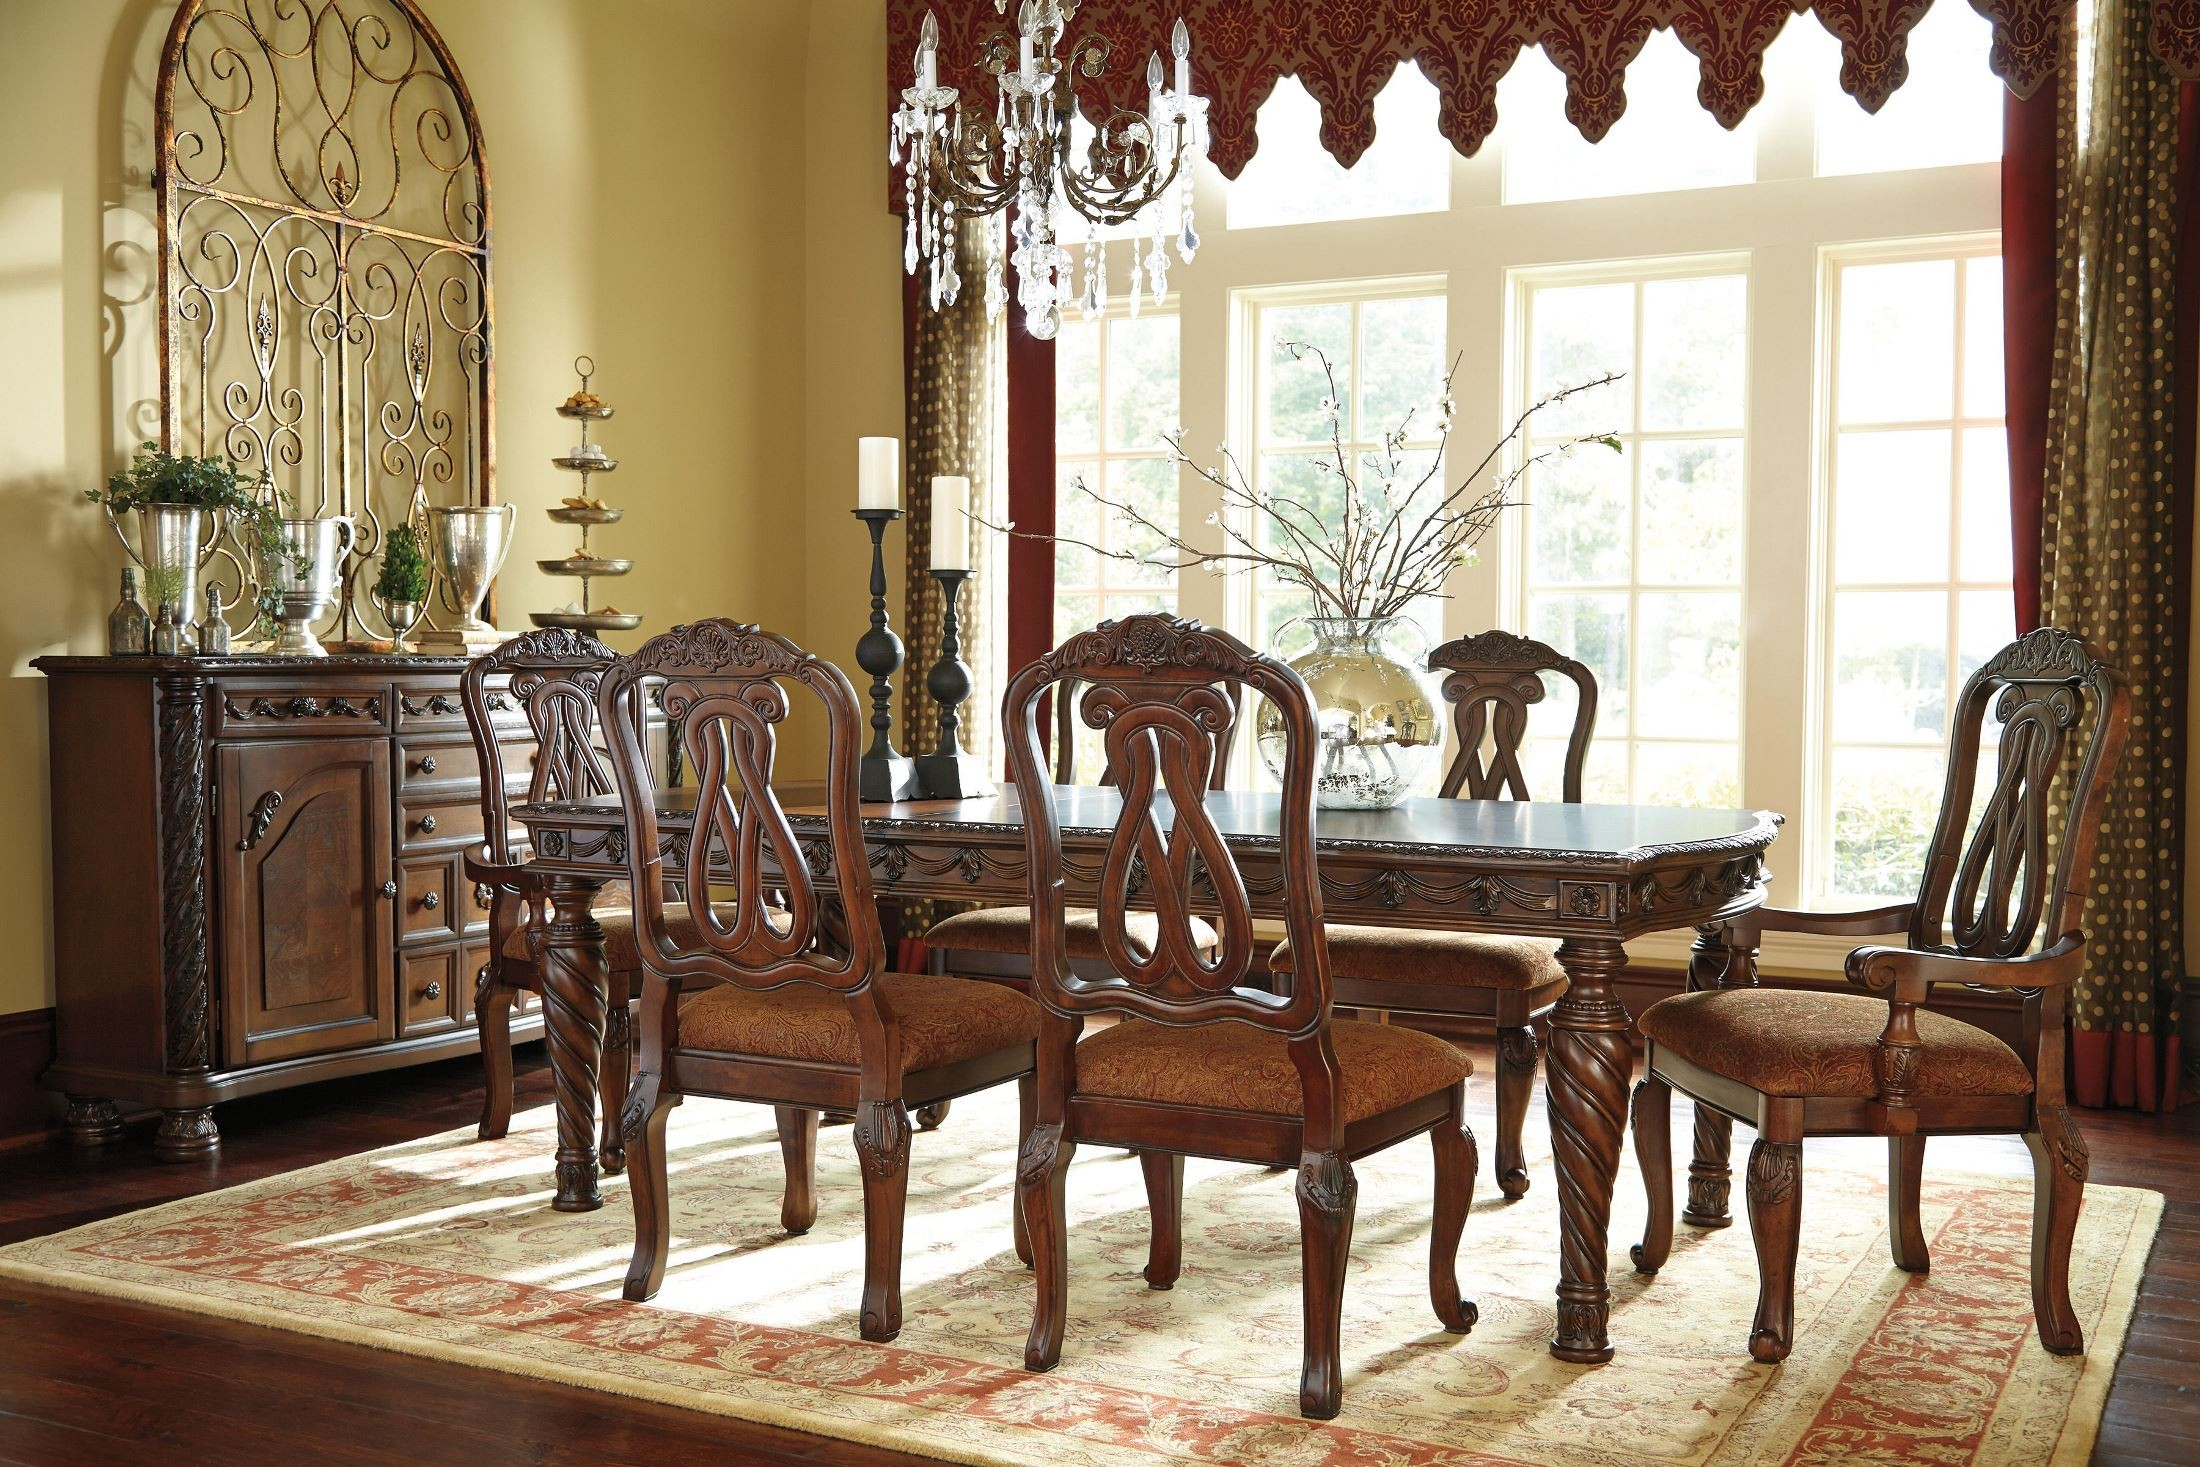 North shore rectangular extendable dining room set from ashley d553 35 coleman furniture - Ashley north shore dining room set ...